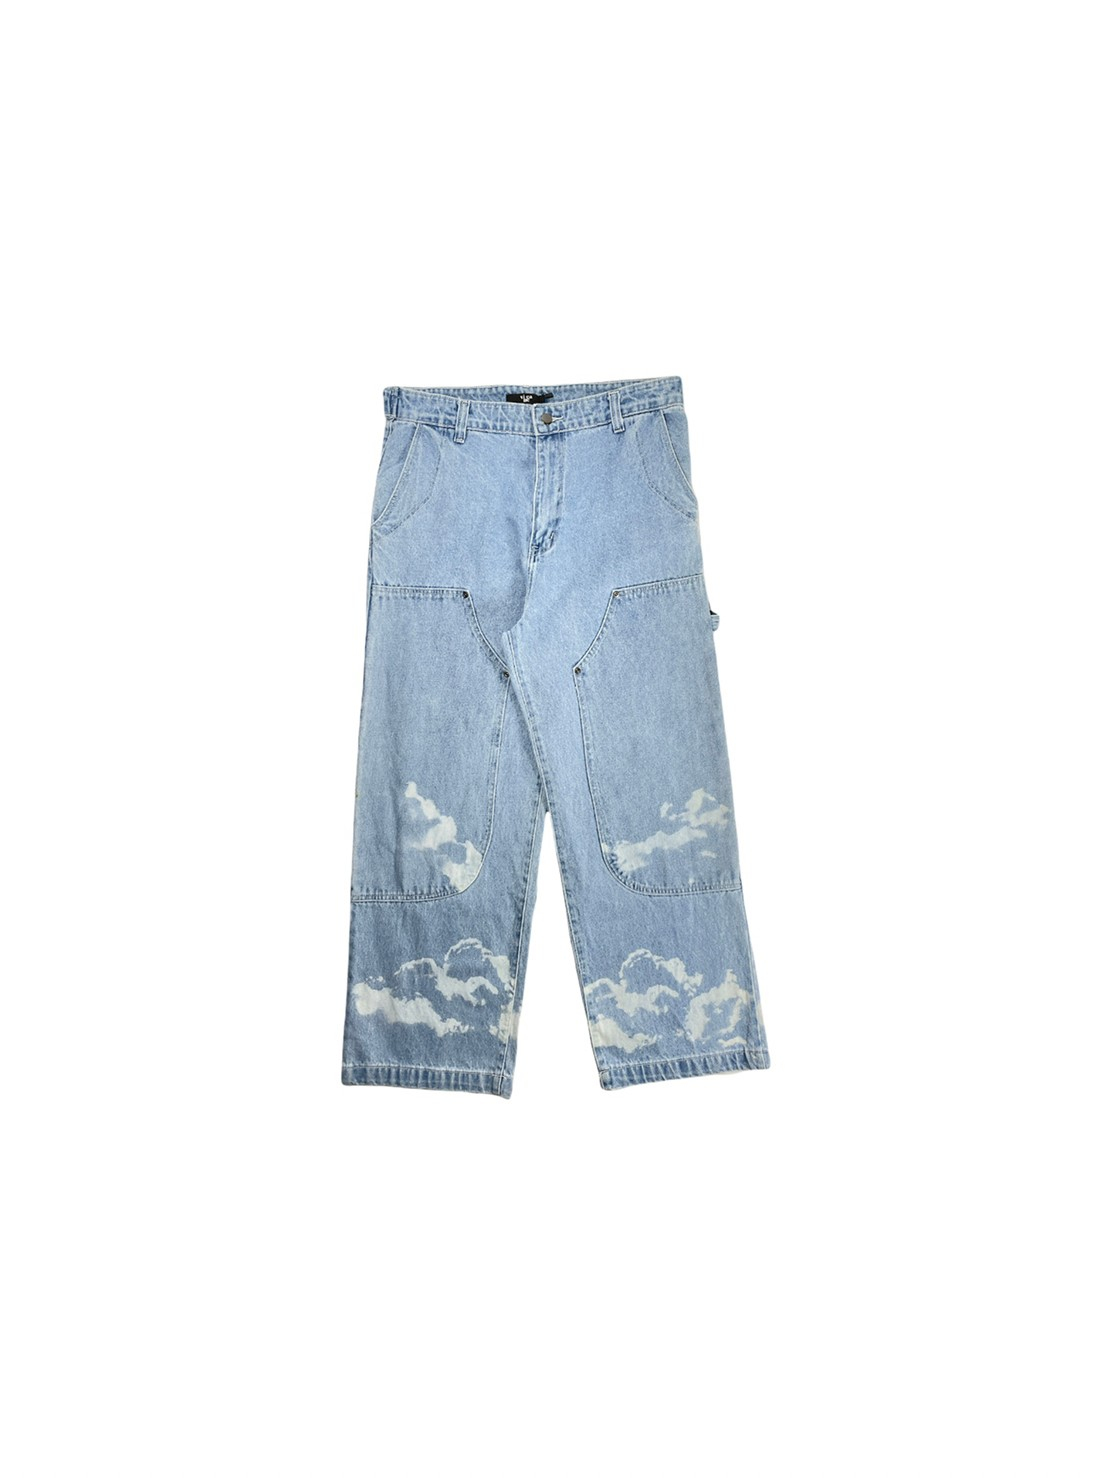 Vineca Cloudy Jeans